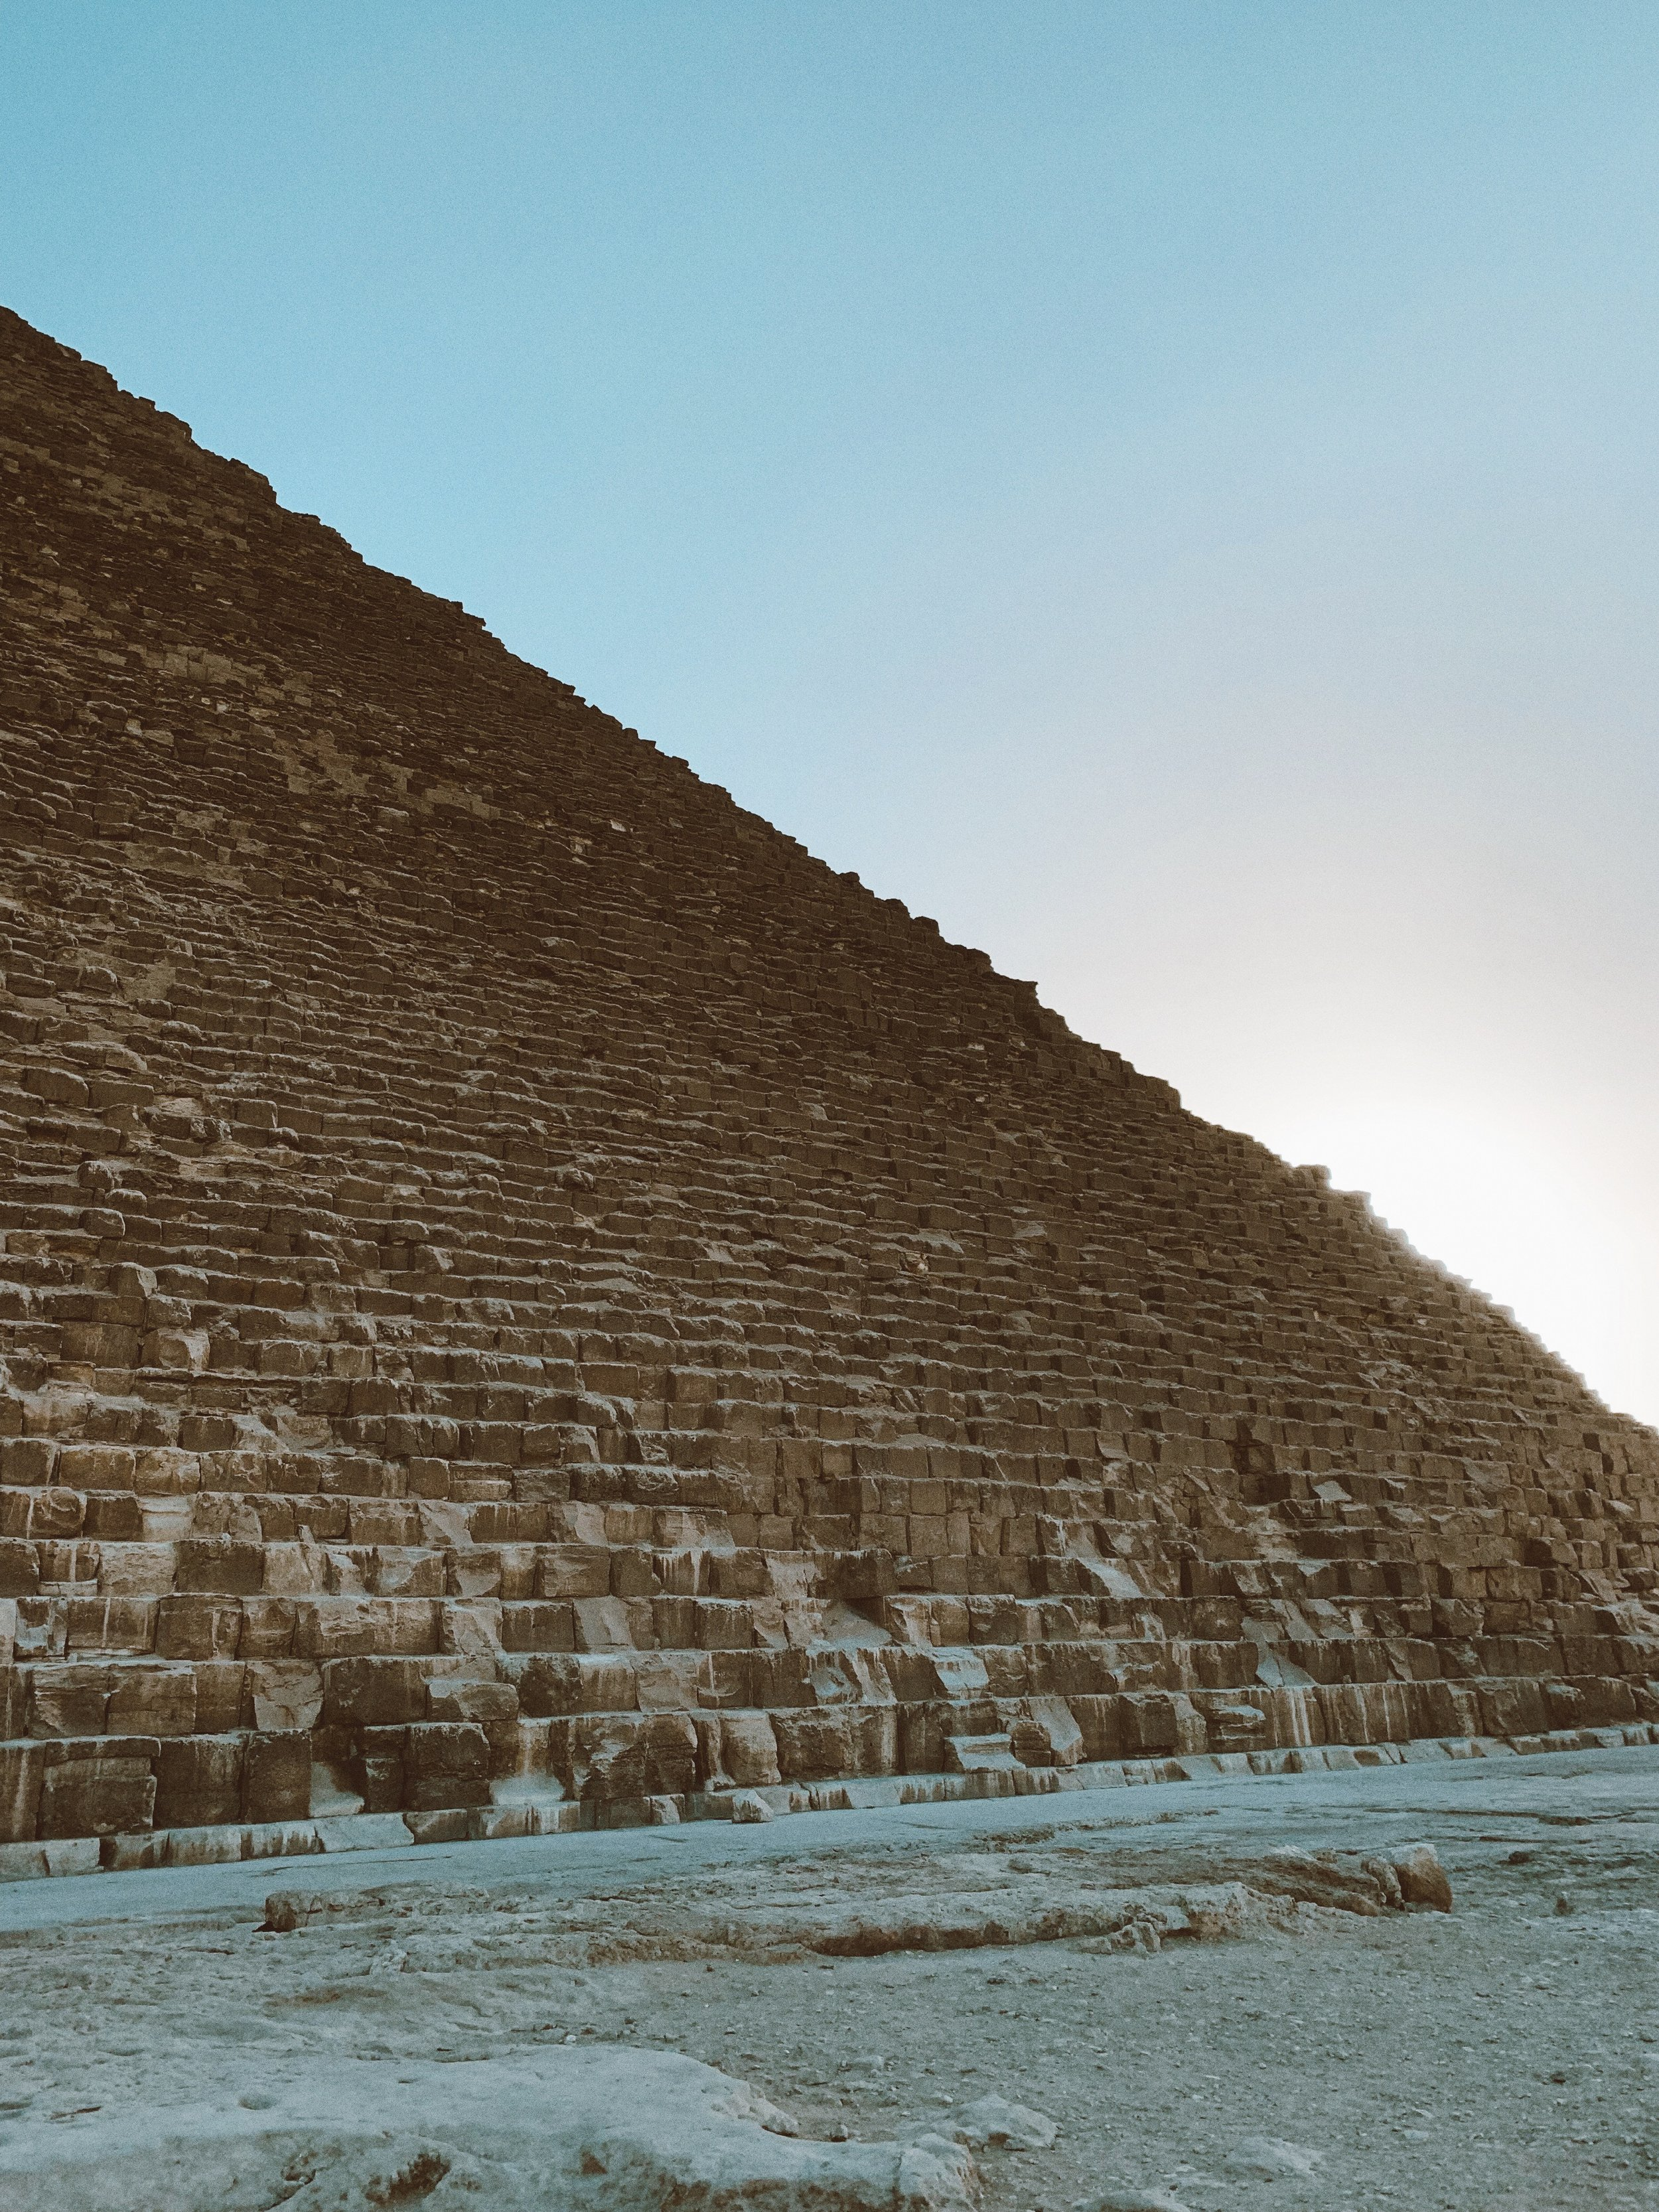 Journey into the Great Pyramid of Giza